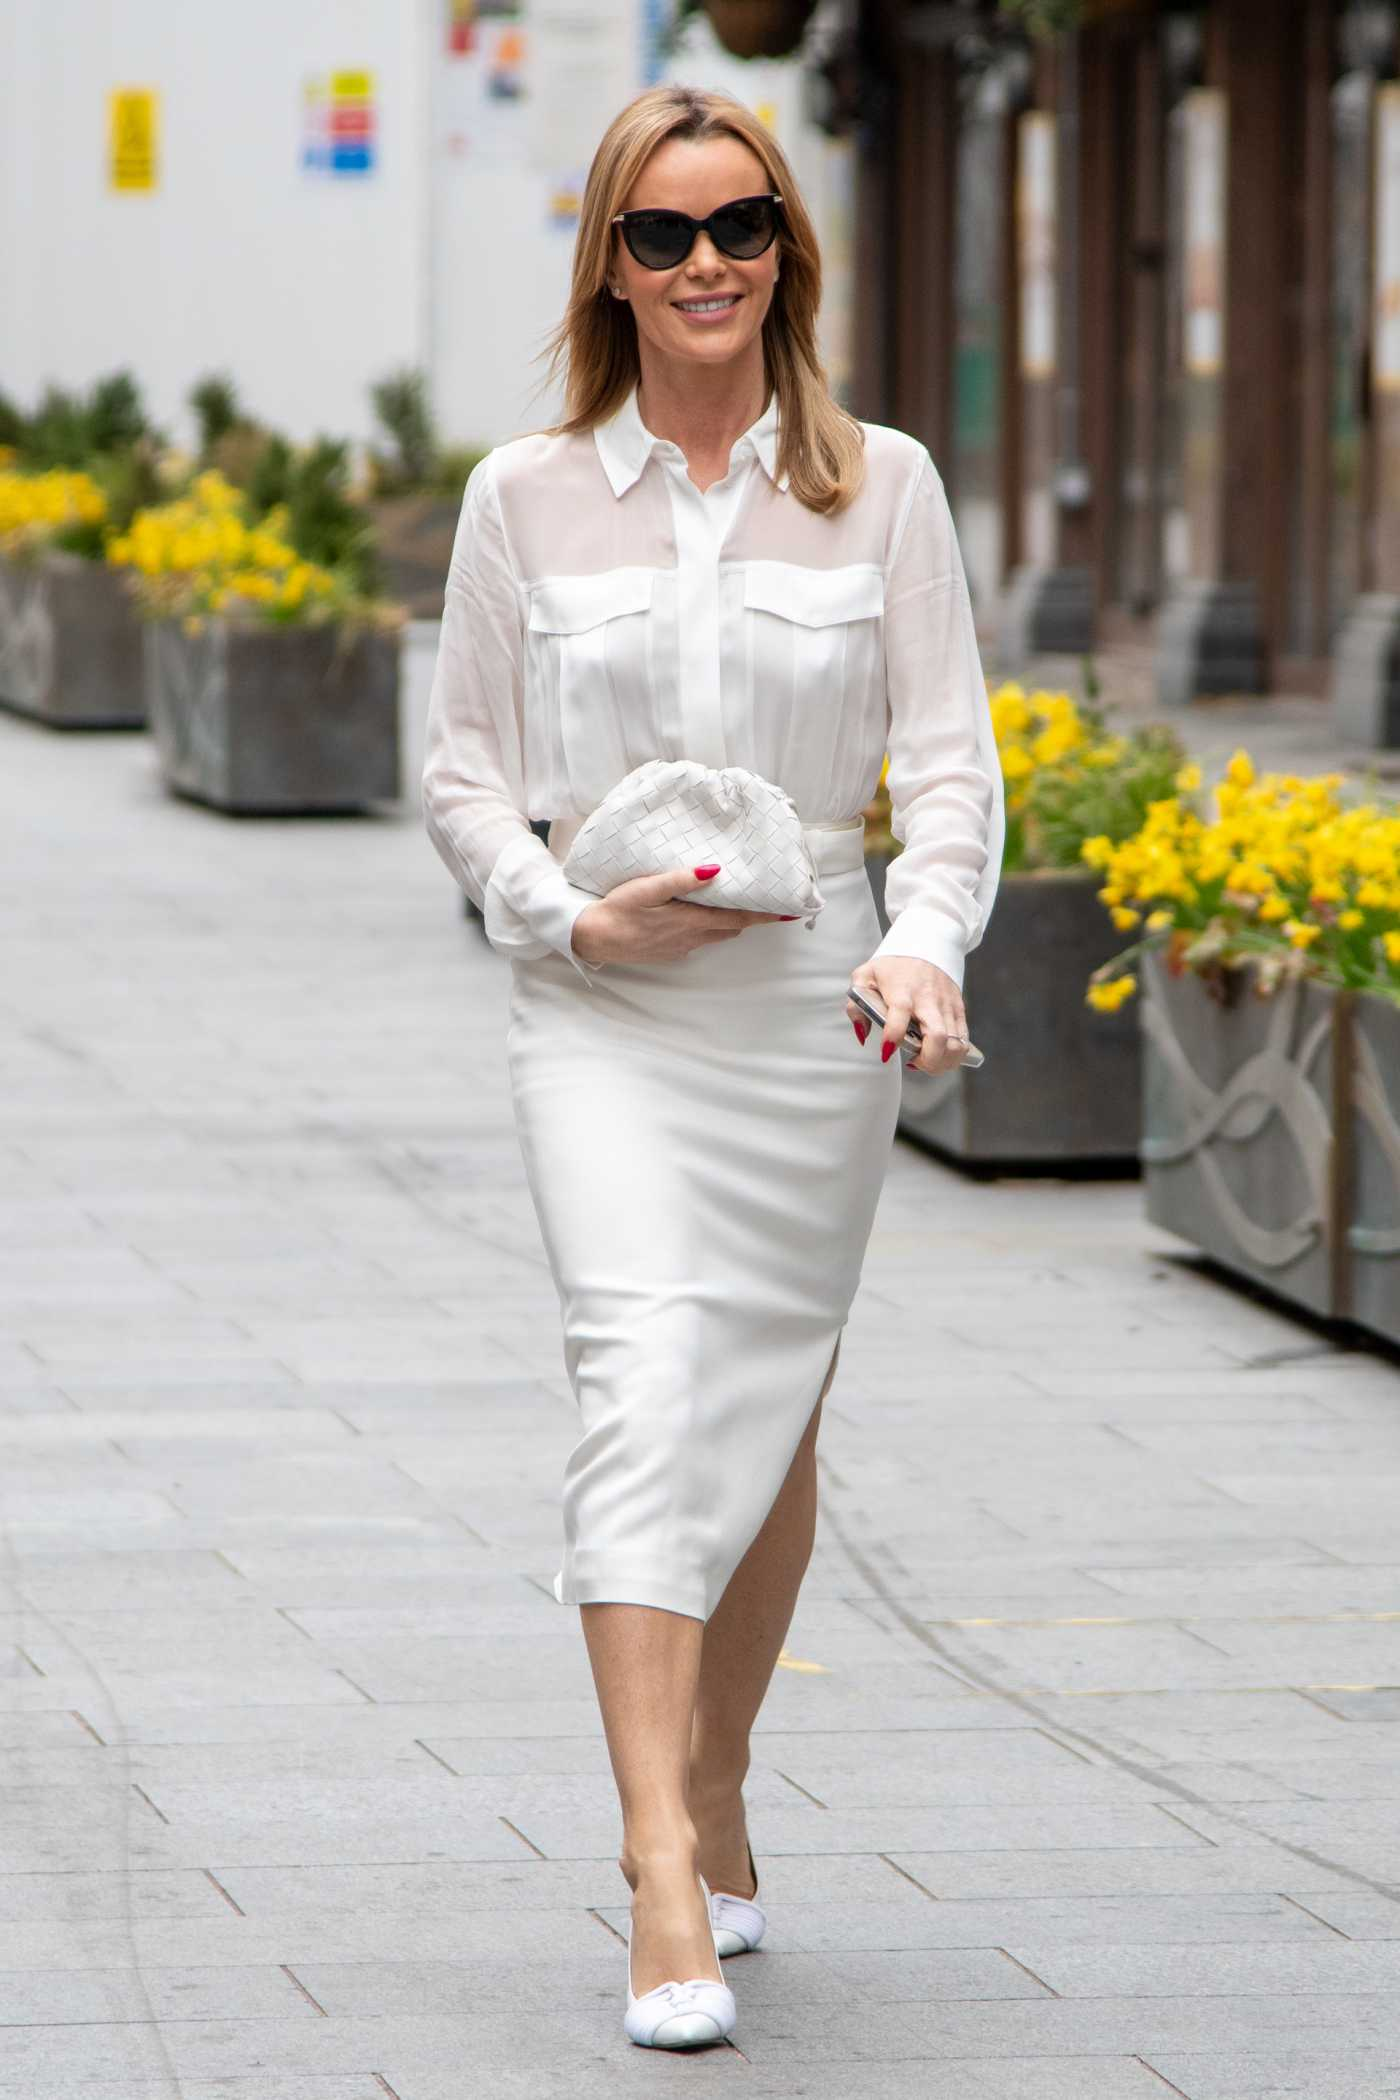 Amanda Holden in a White Ensemble Leaves Her Heart FM Show at the Global Radio Studios in London 03/23/2021